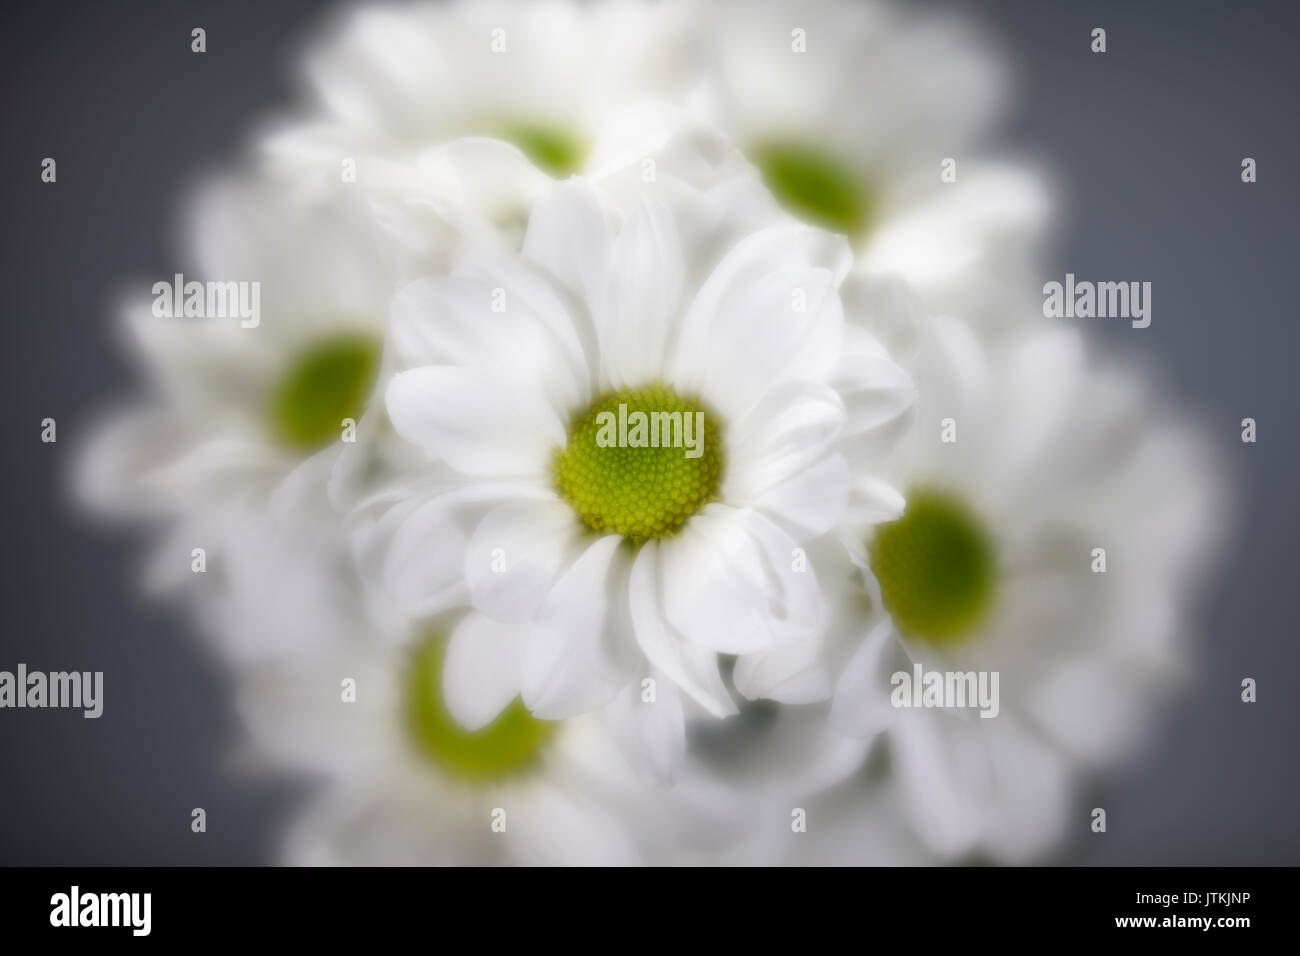 Soft focus white and green daisis - Stock Image